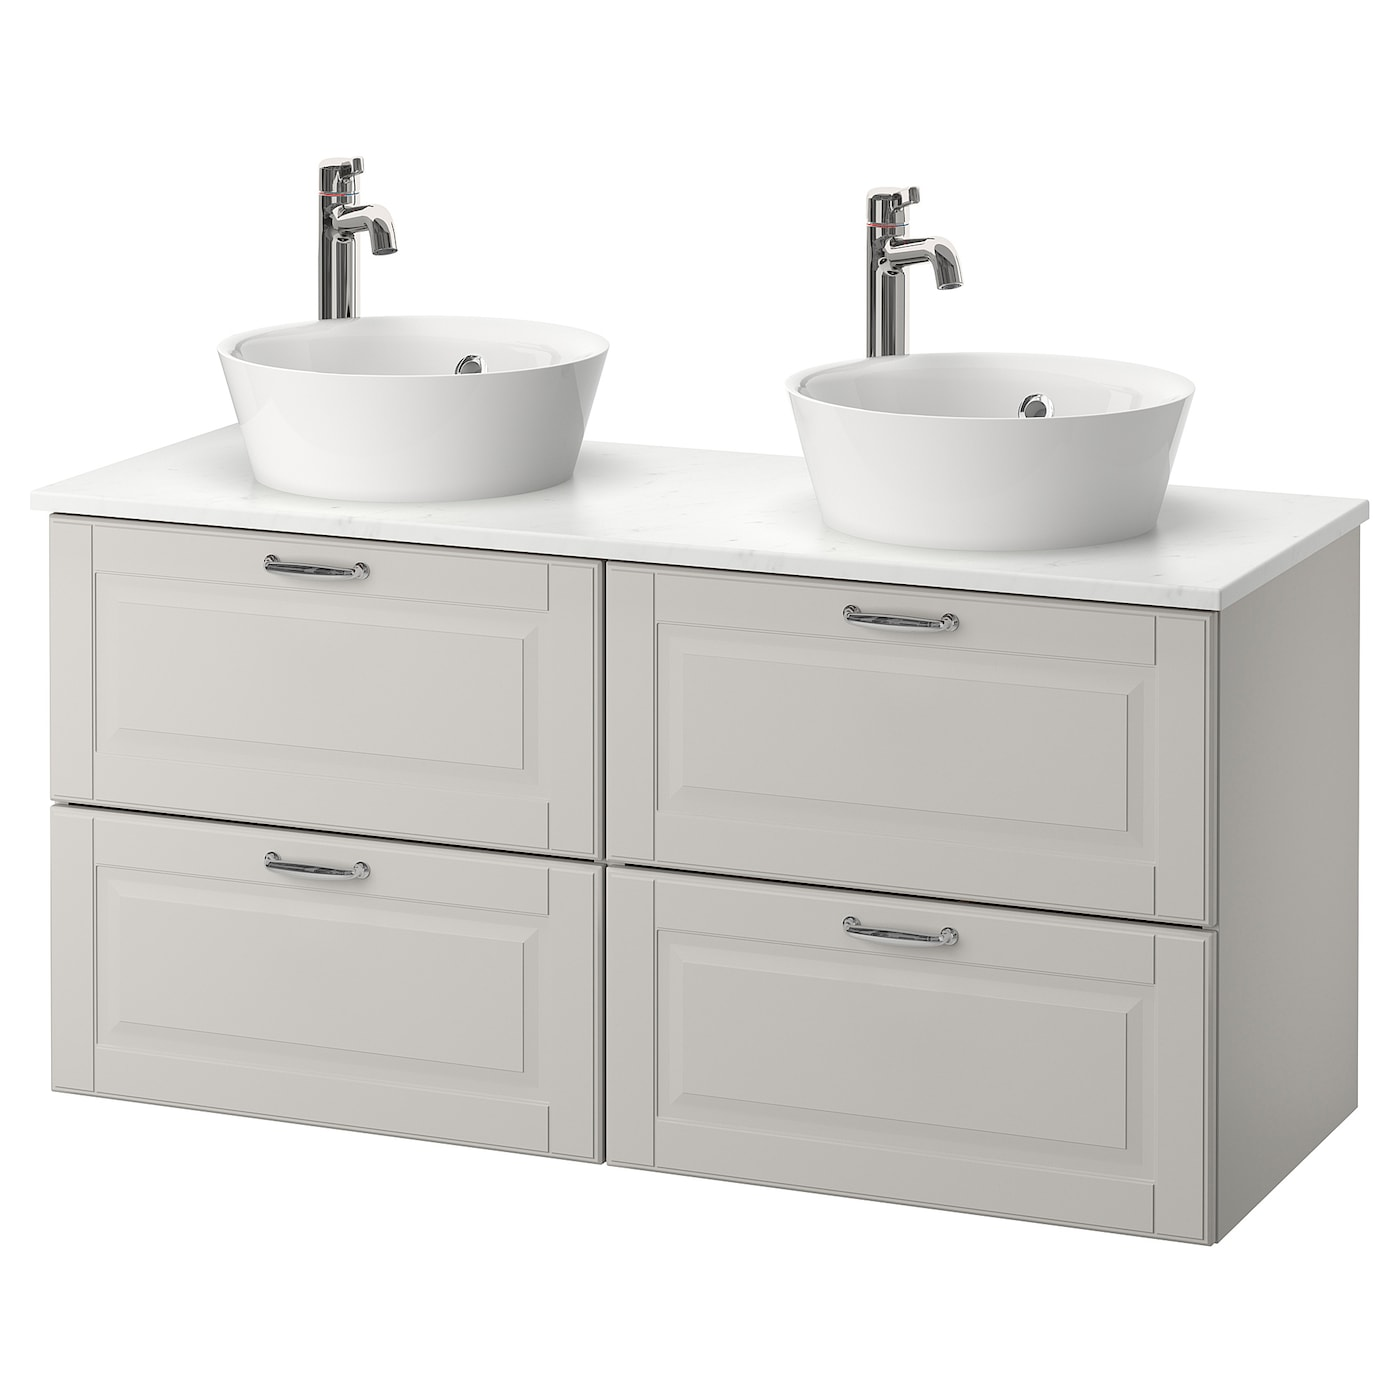 bathroom sink units ikea kattevik godmorgon tolken wsh stnd w countertop 40 wash 16596